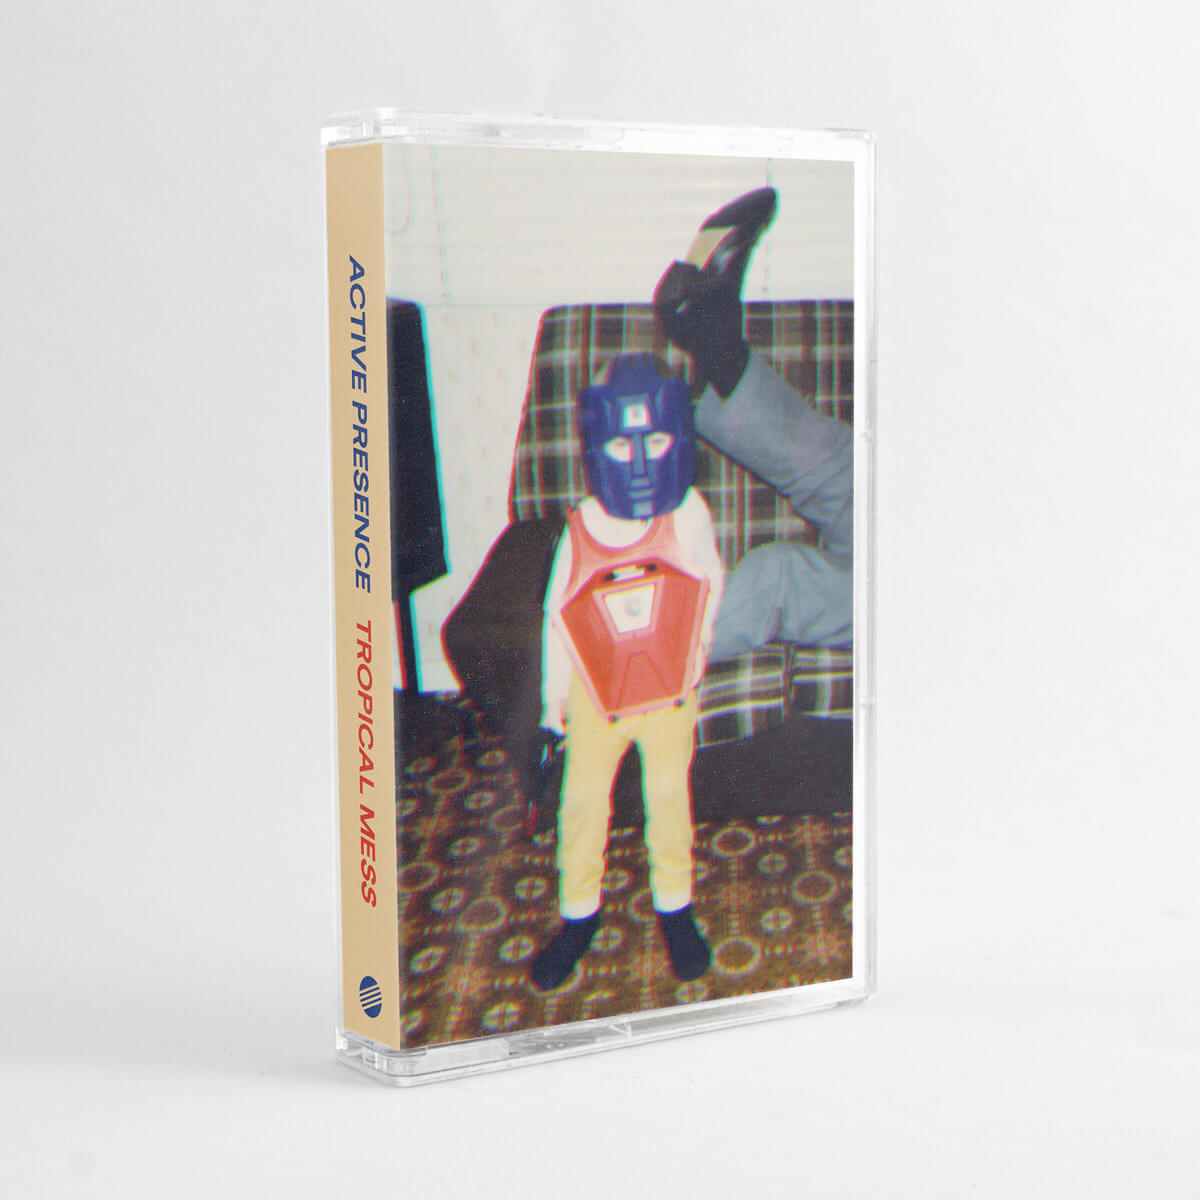 TROPICAL MESS by ACTIVE PRESENCE (Limited Edition Cassette + Digital Download) 1